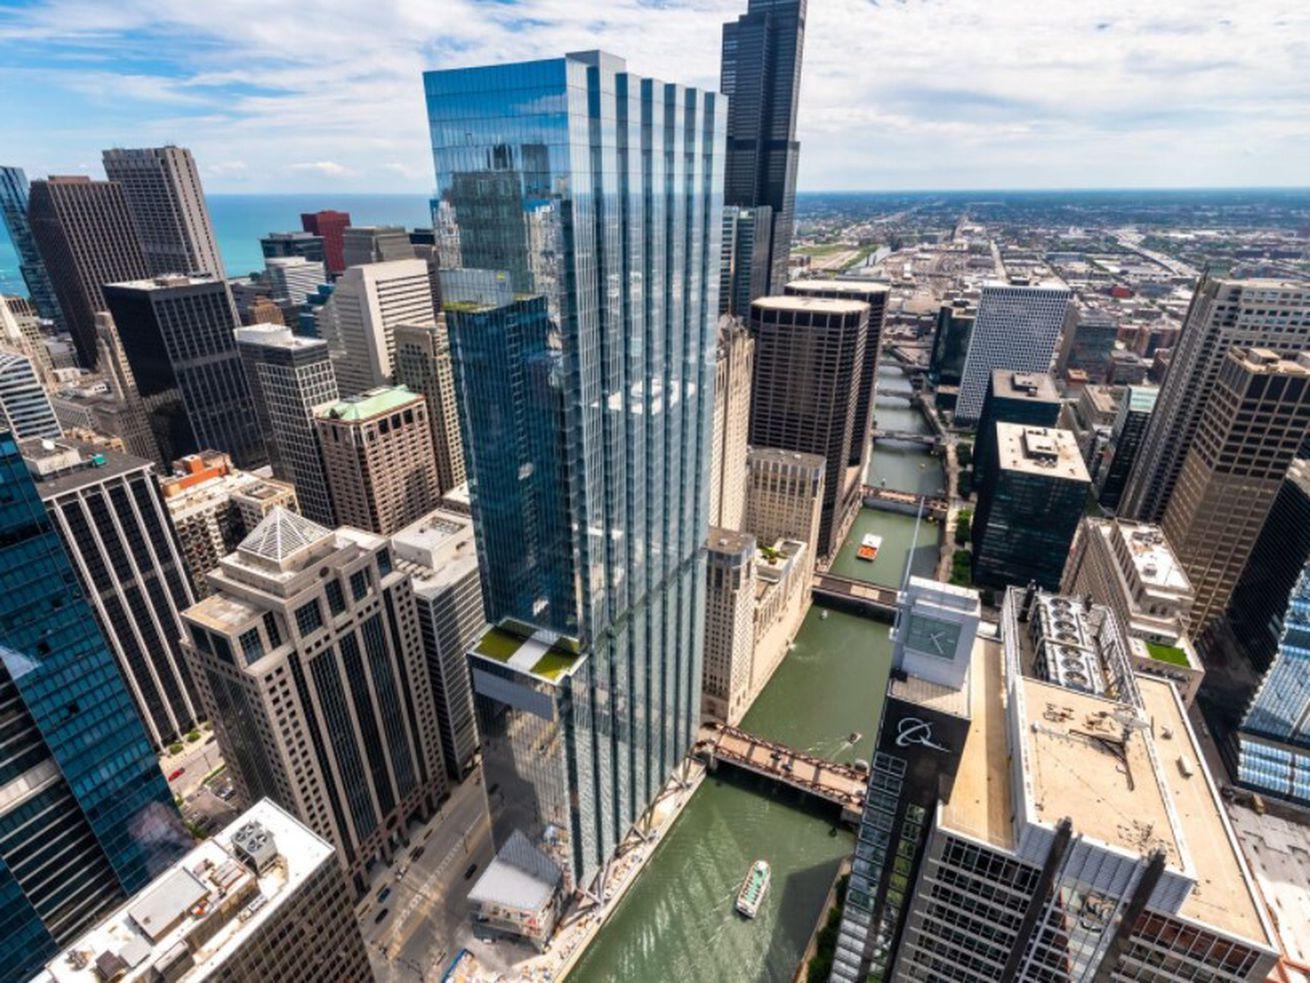 Downtown Chicago faces an office glut